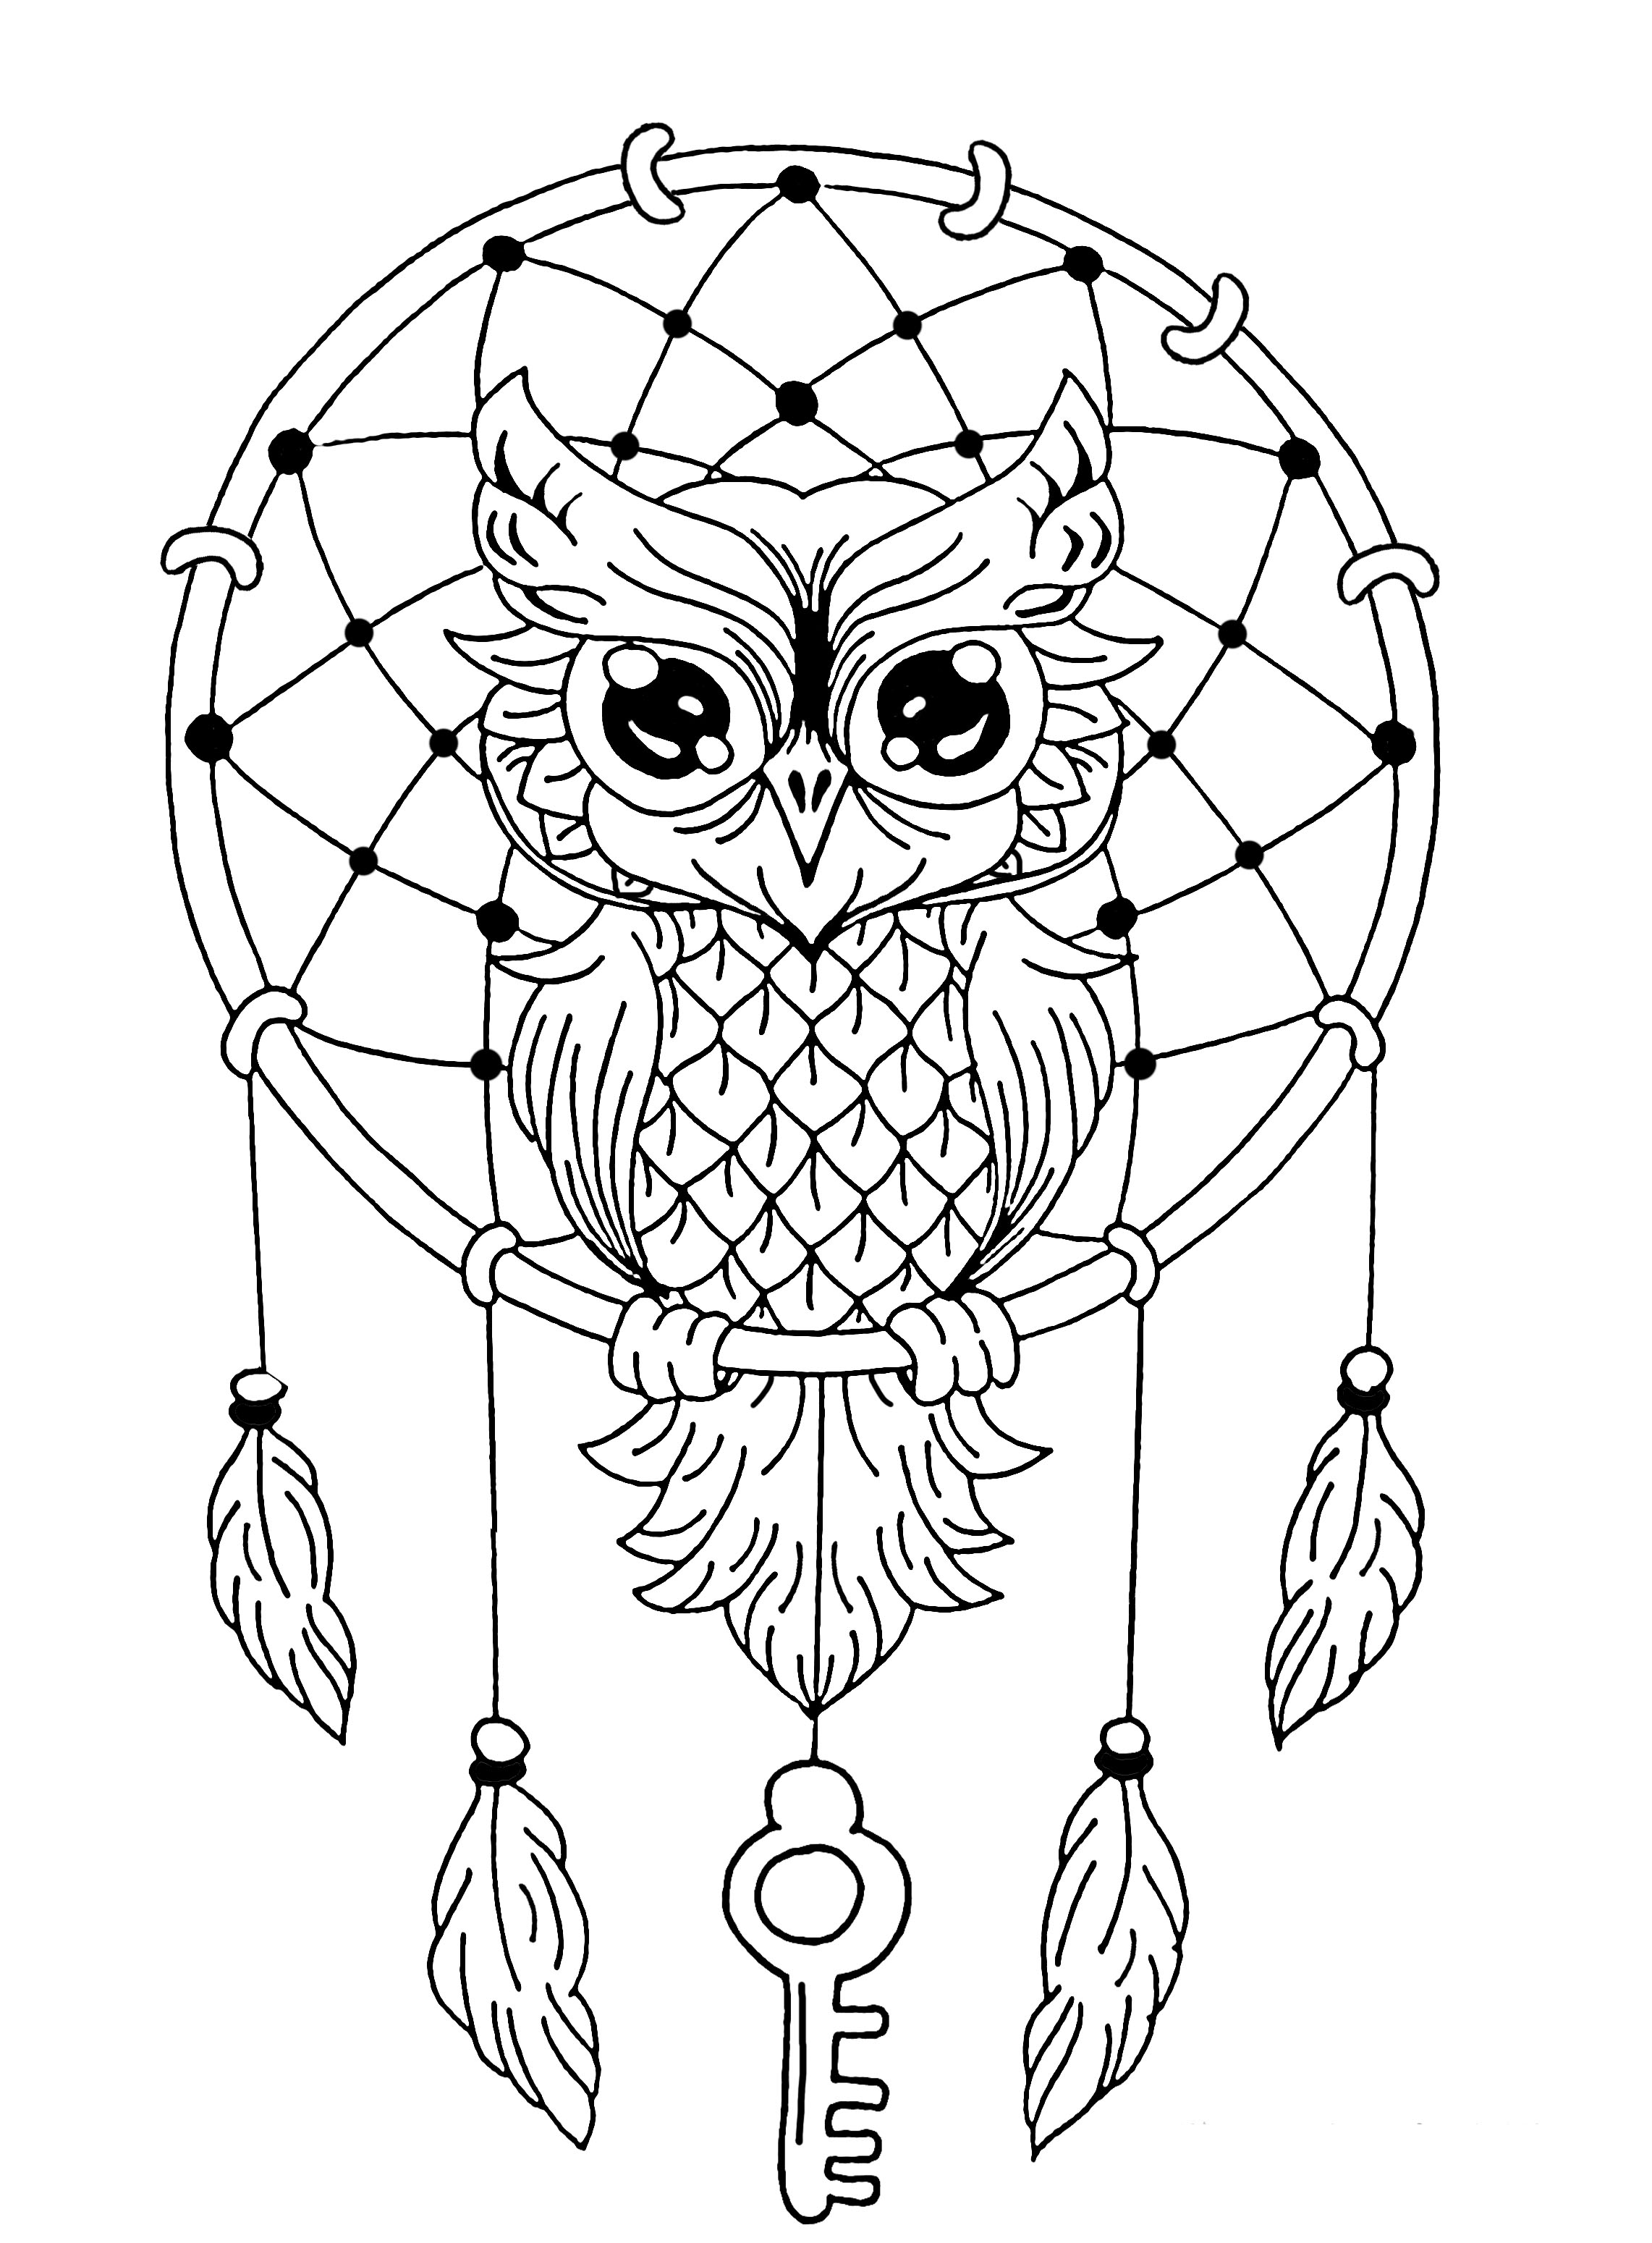 Owls for kids - Owls - Free printable Coloring pages for kids